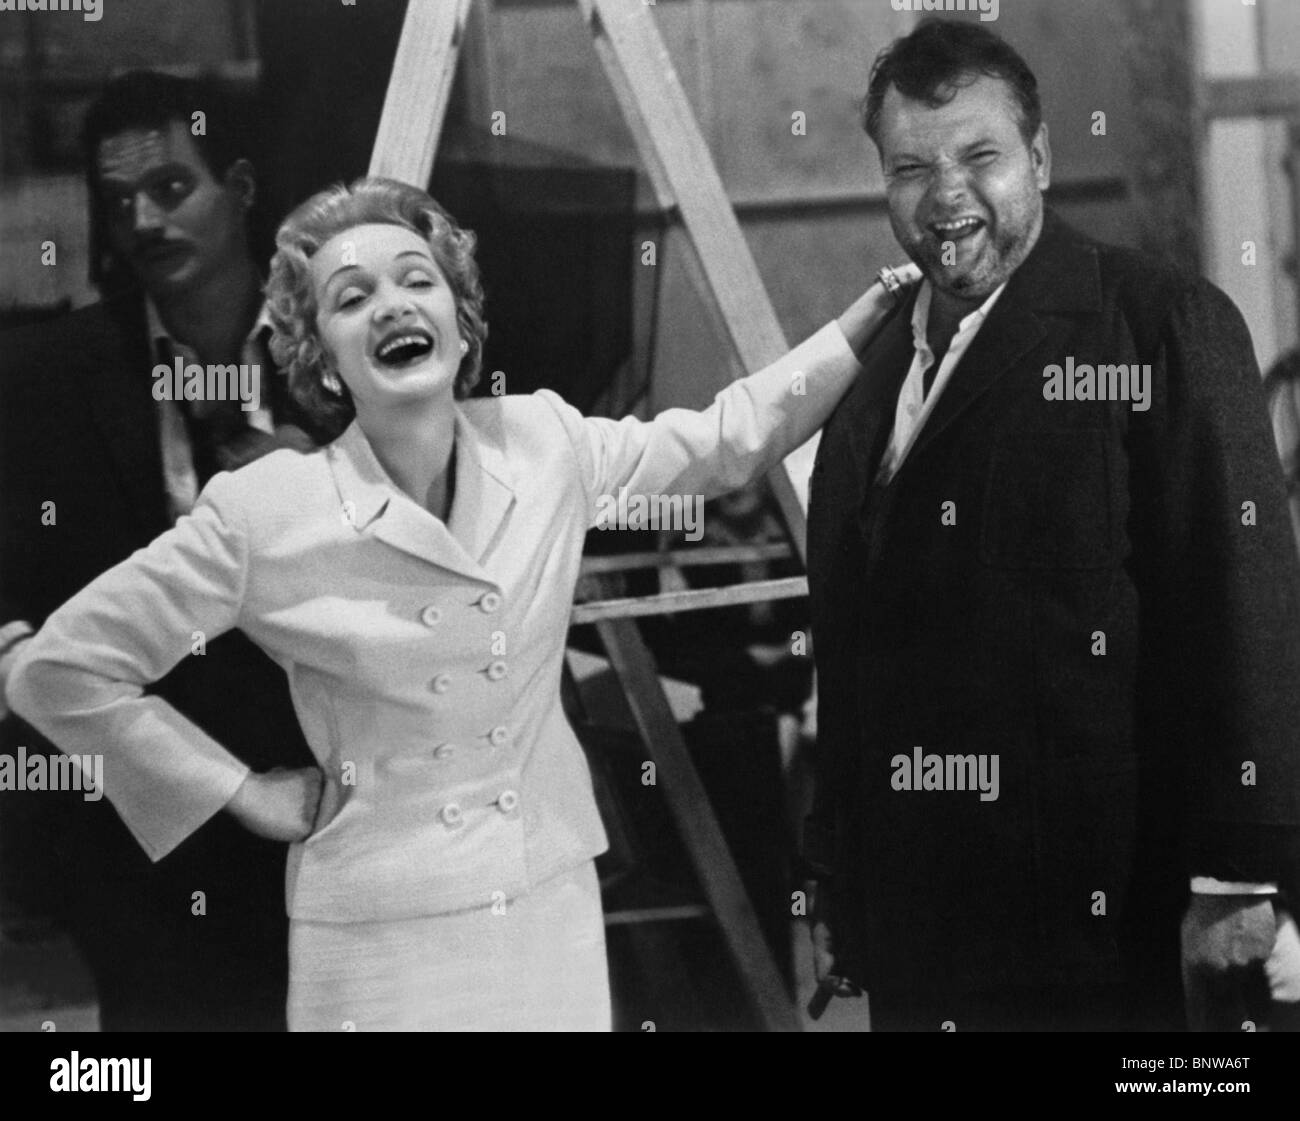 MARLENE DIETRICH, ORSON WELLES, TOUCH OF EVIL, 1958 Stock Photo - Alamy